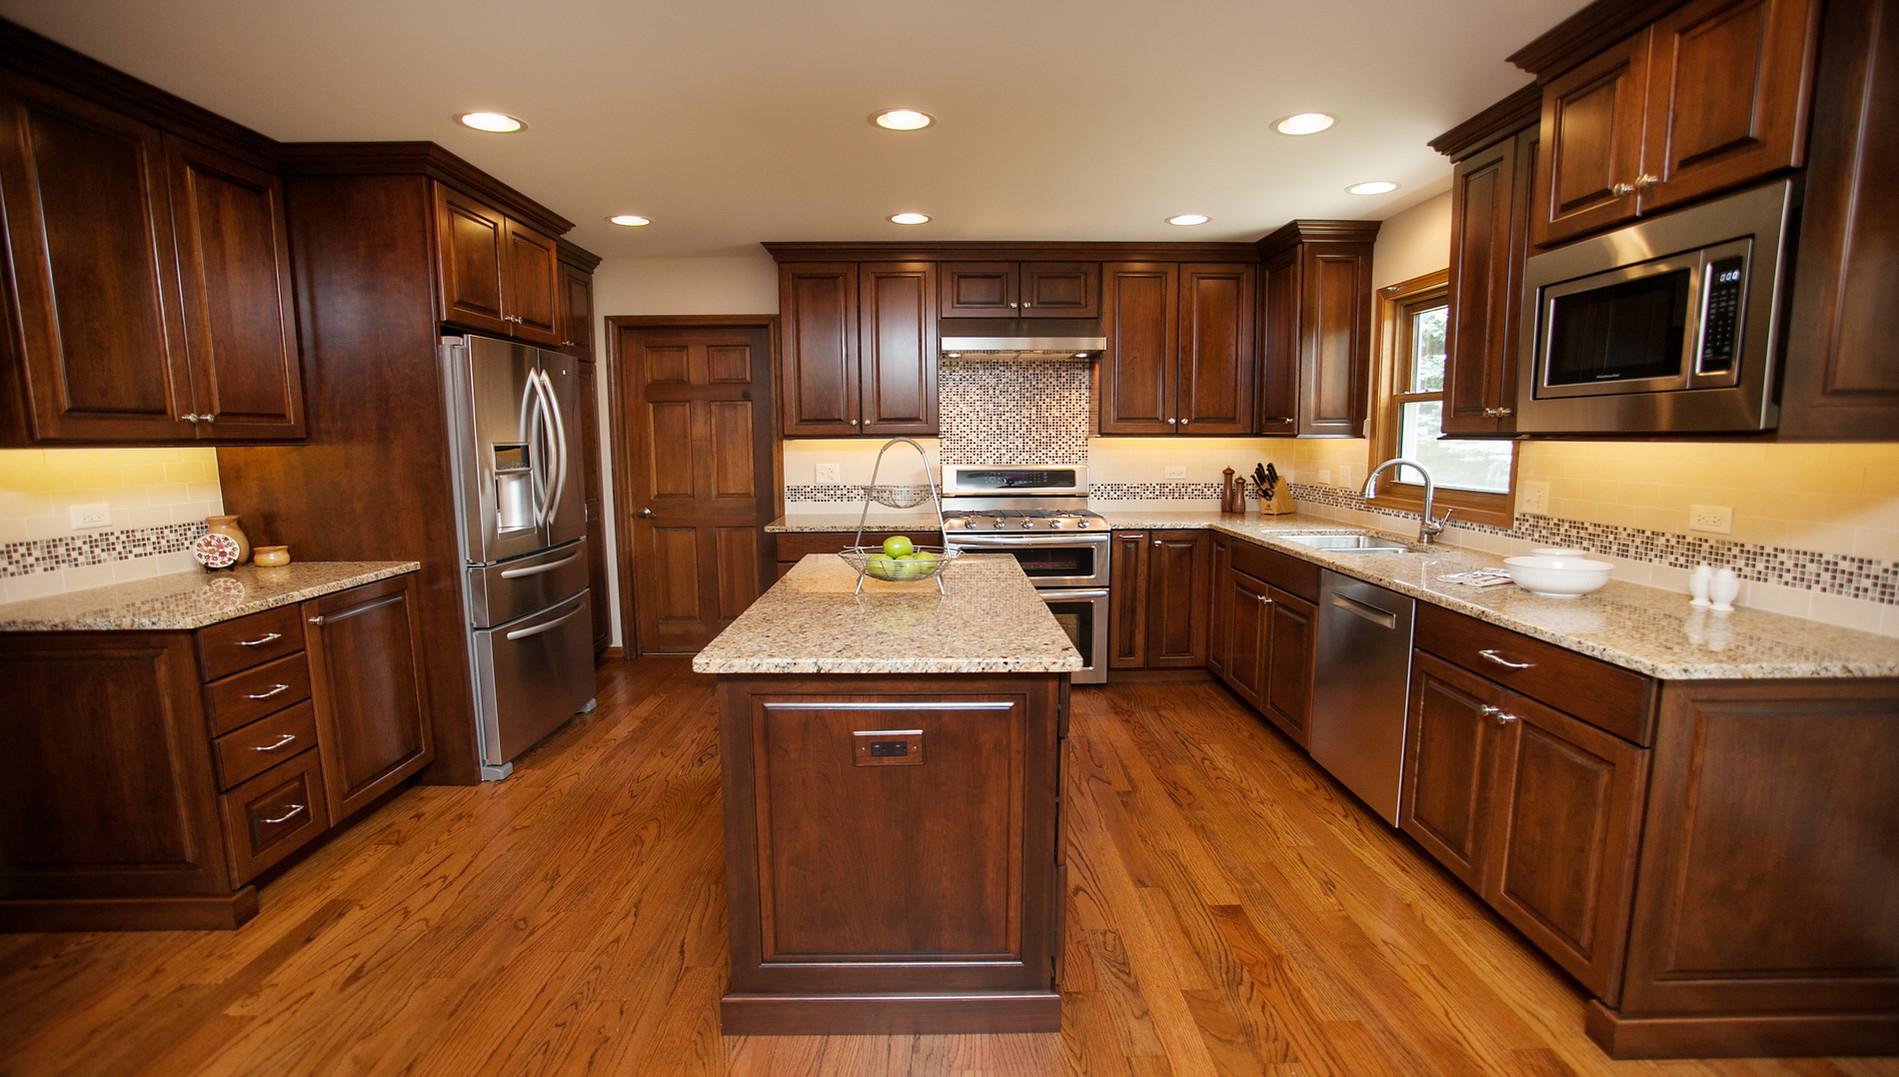 Dinner is served! This elegant kitchen boasts richly finished cherry